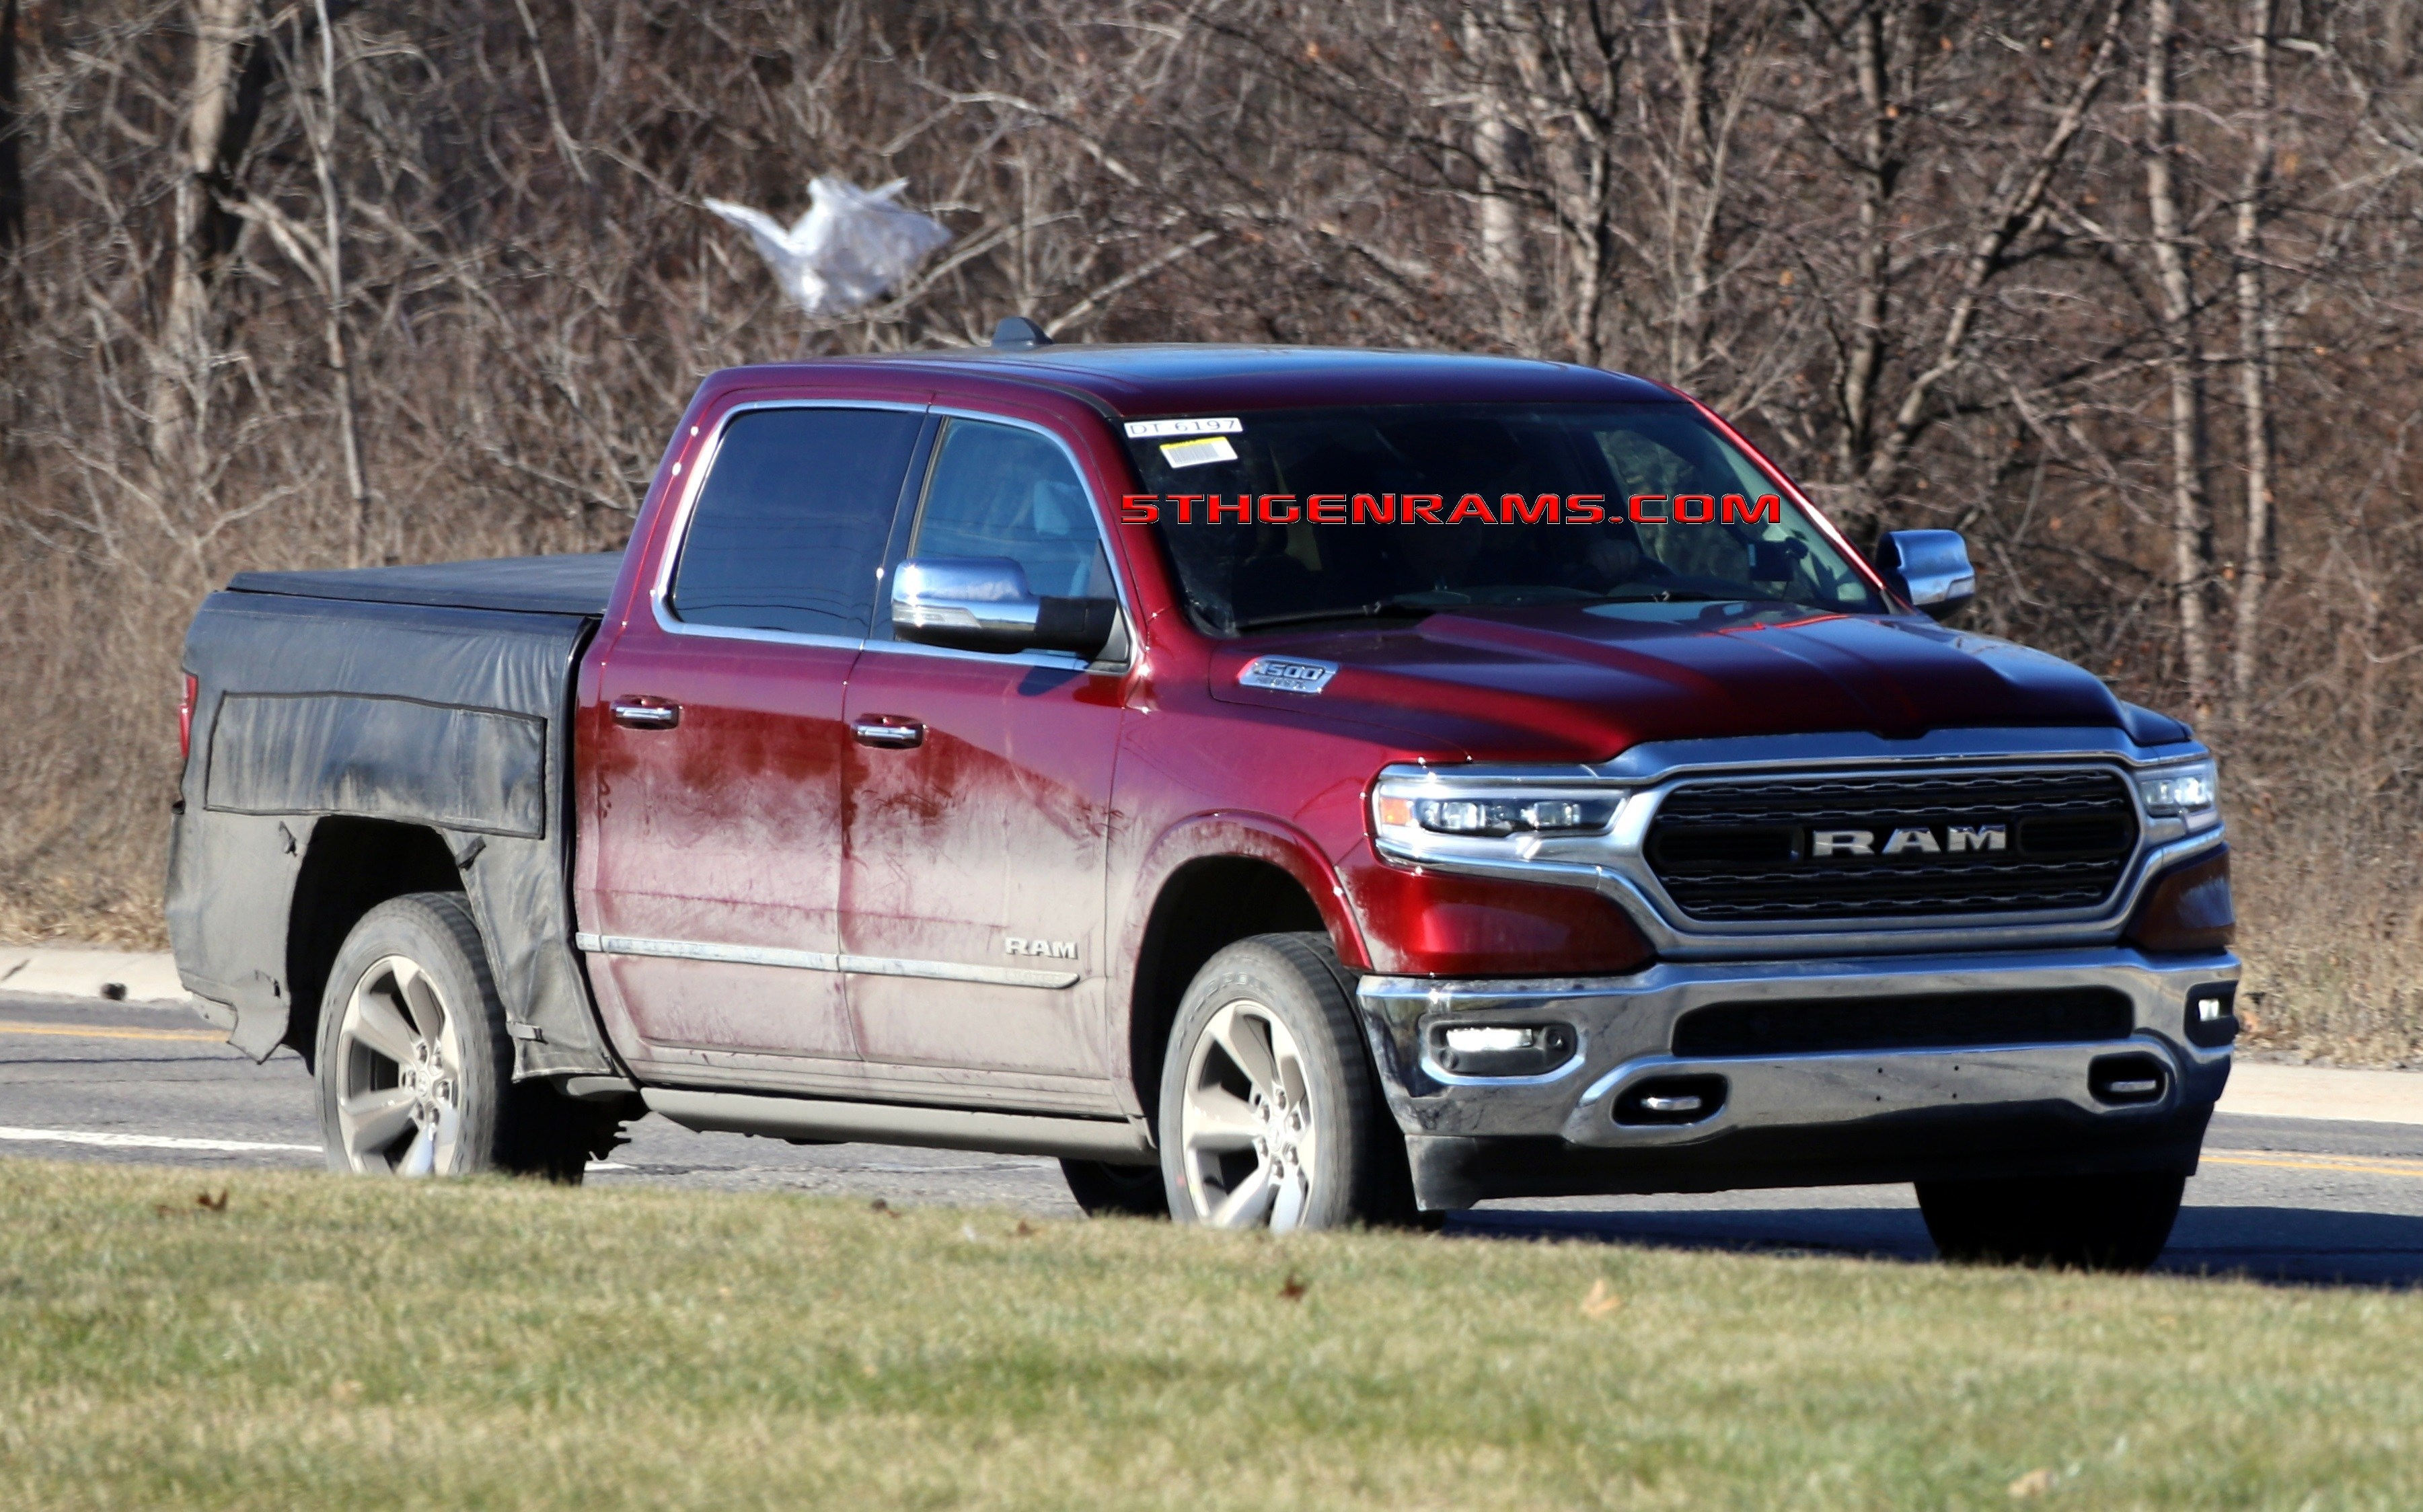 2020 Ram 1500 Review.Complete Car Info For 13 The 2020 Ram 1500 Engine With All